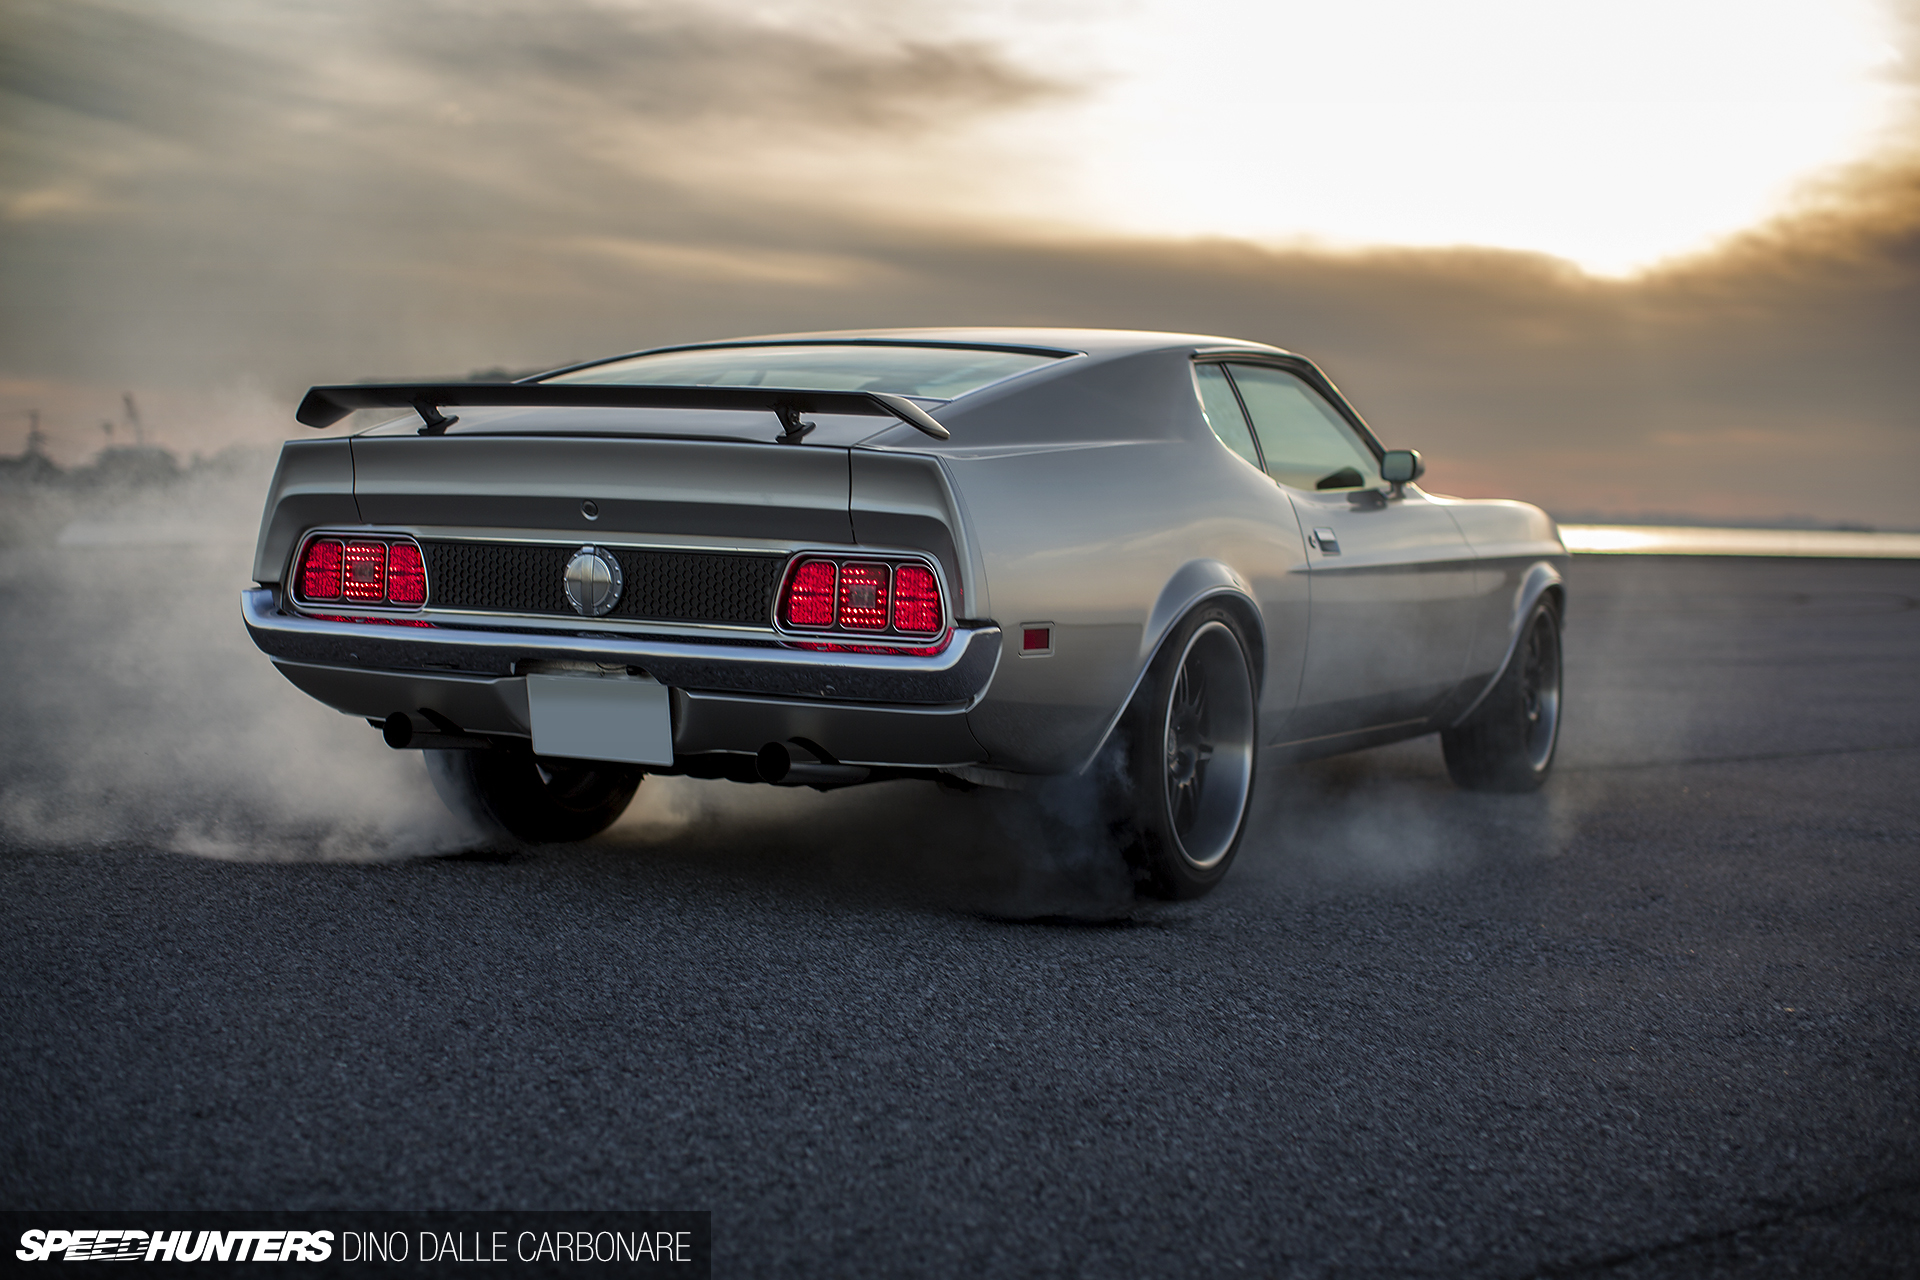 Resurrecting A Mach 1 Mustang Speedhunters